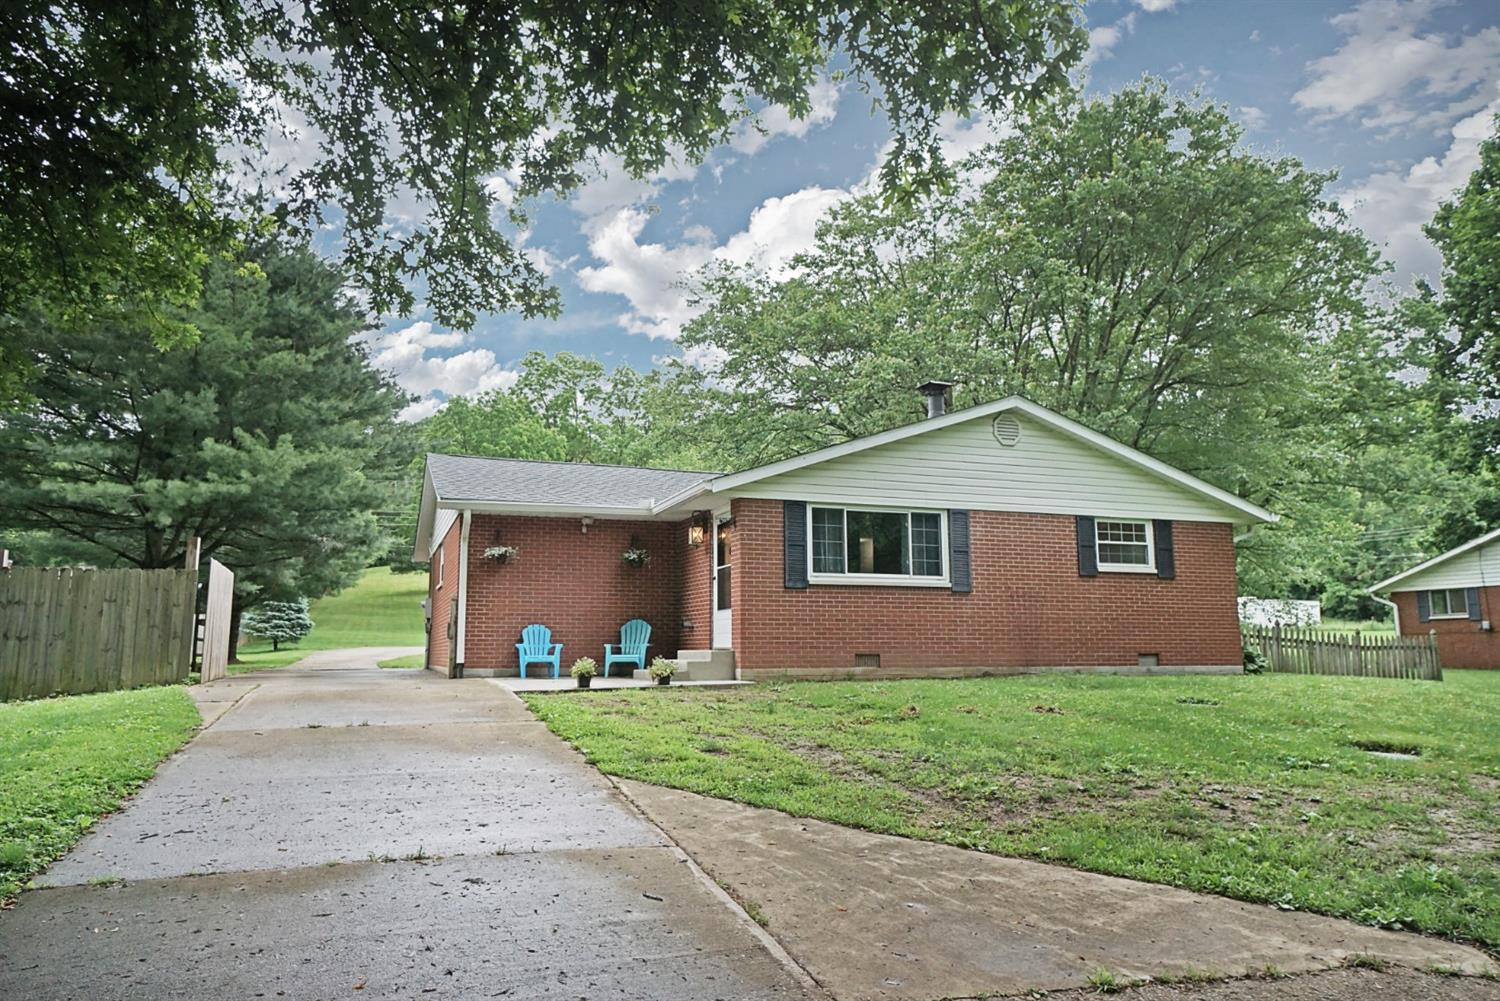 Photo 1 for 5360 Corwin Rd Wayne Twp. (Warren Co.), OH 45068